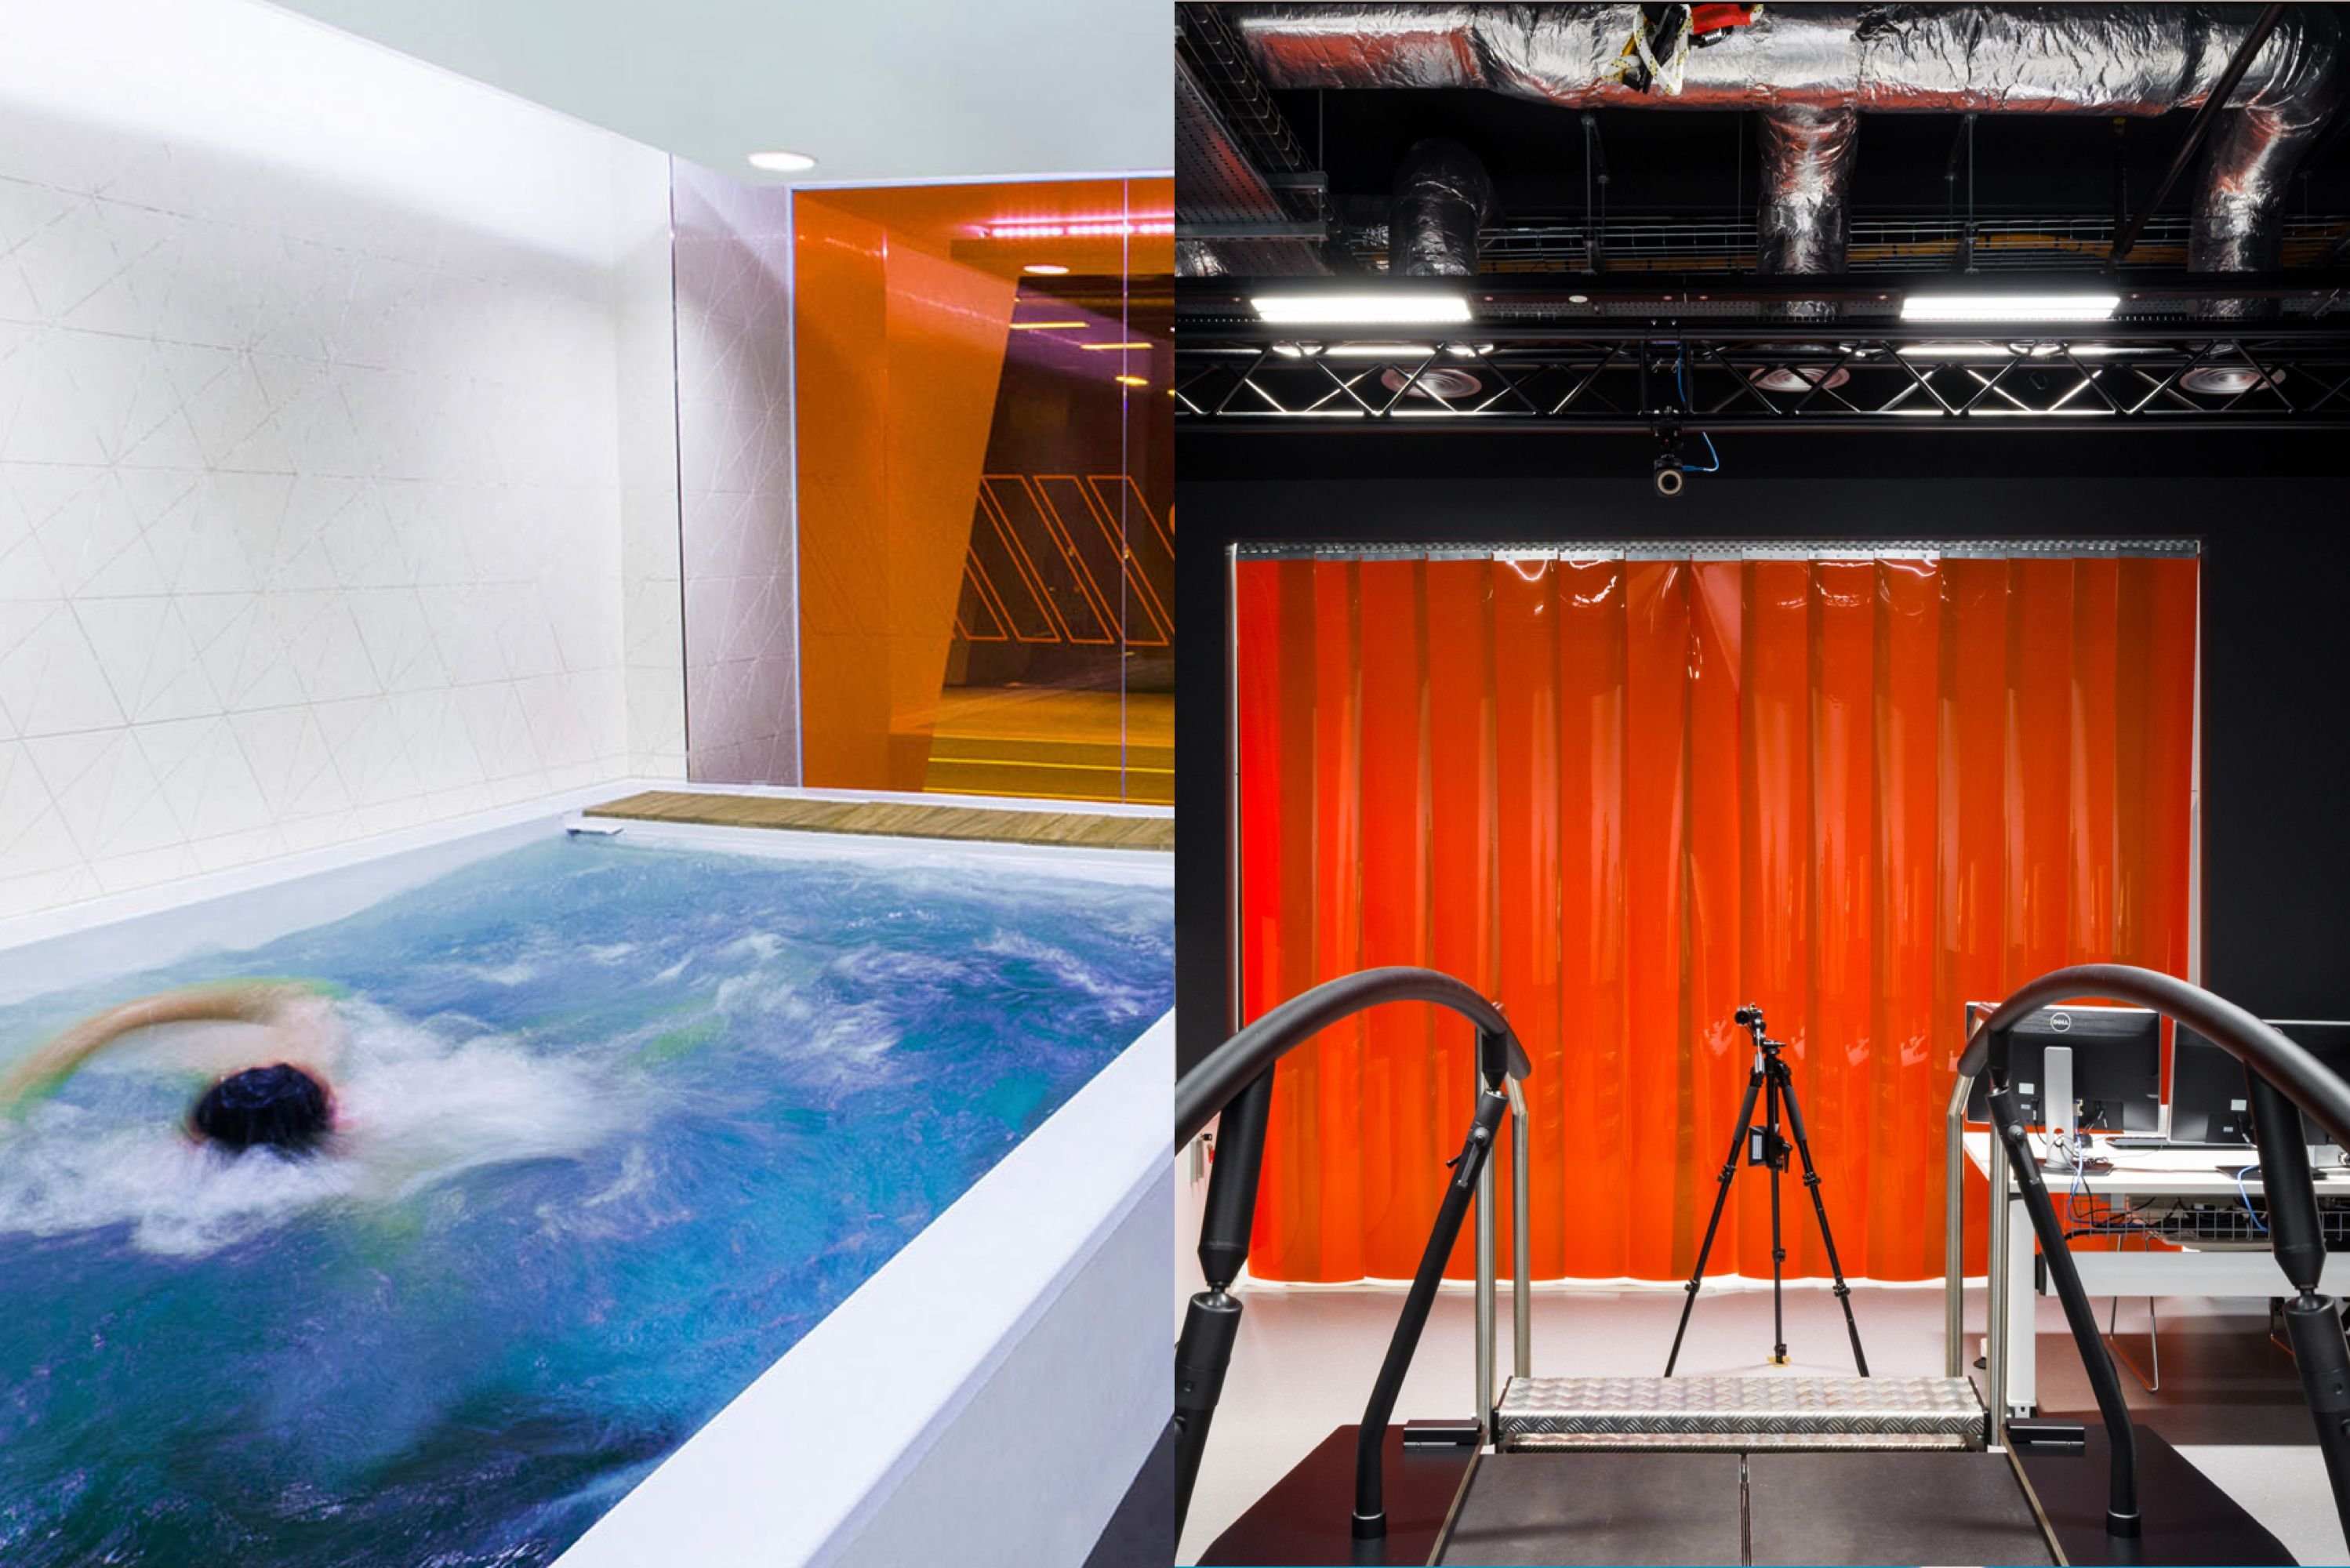 Split image of the GSL swimming pool and running machine lab